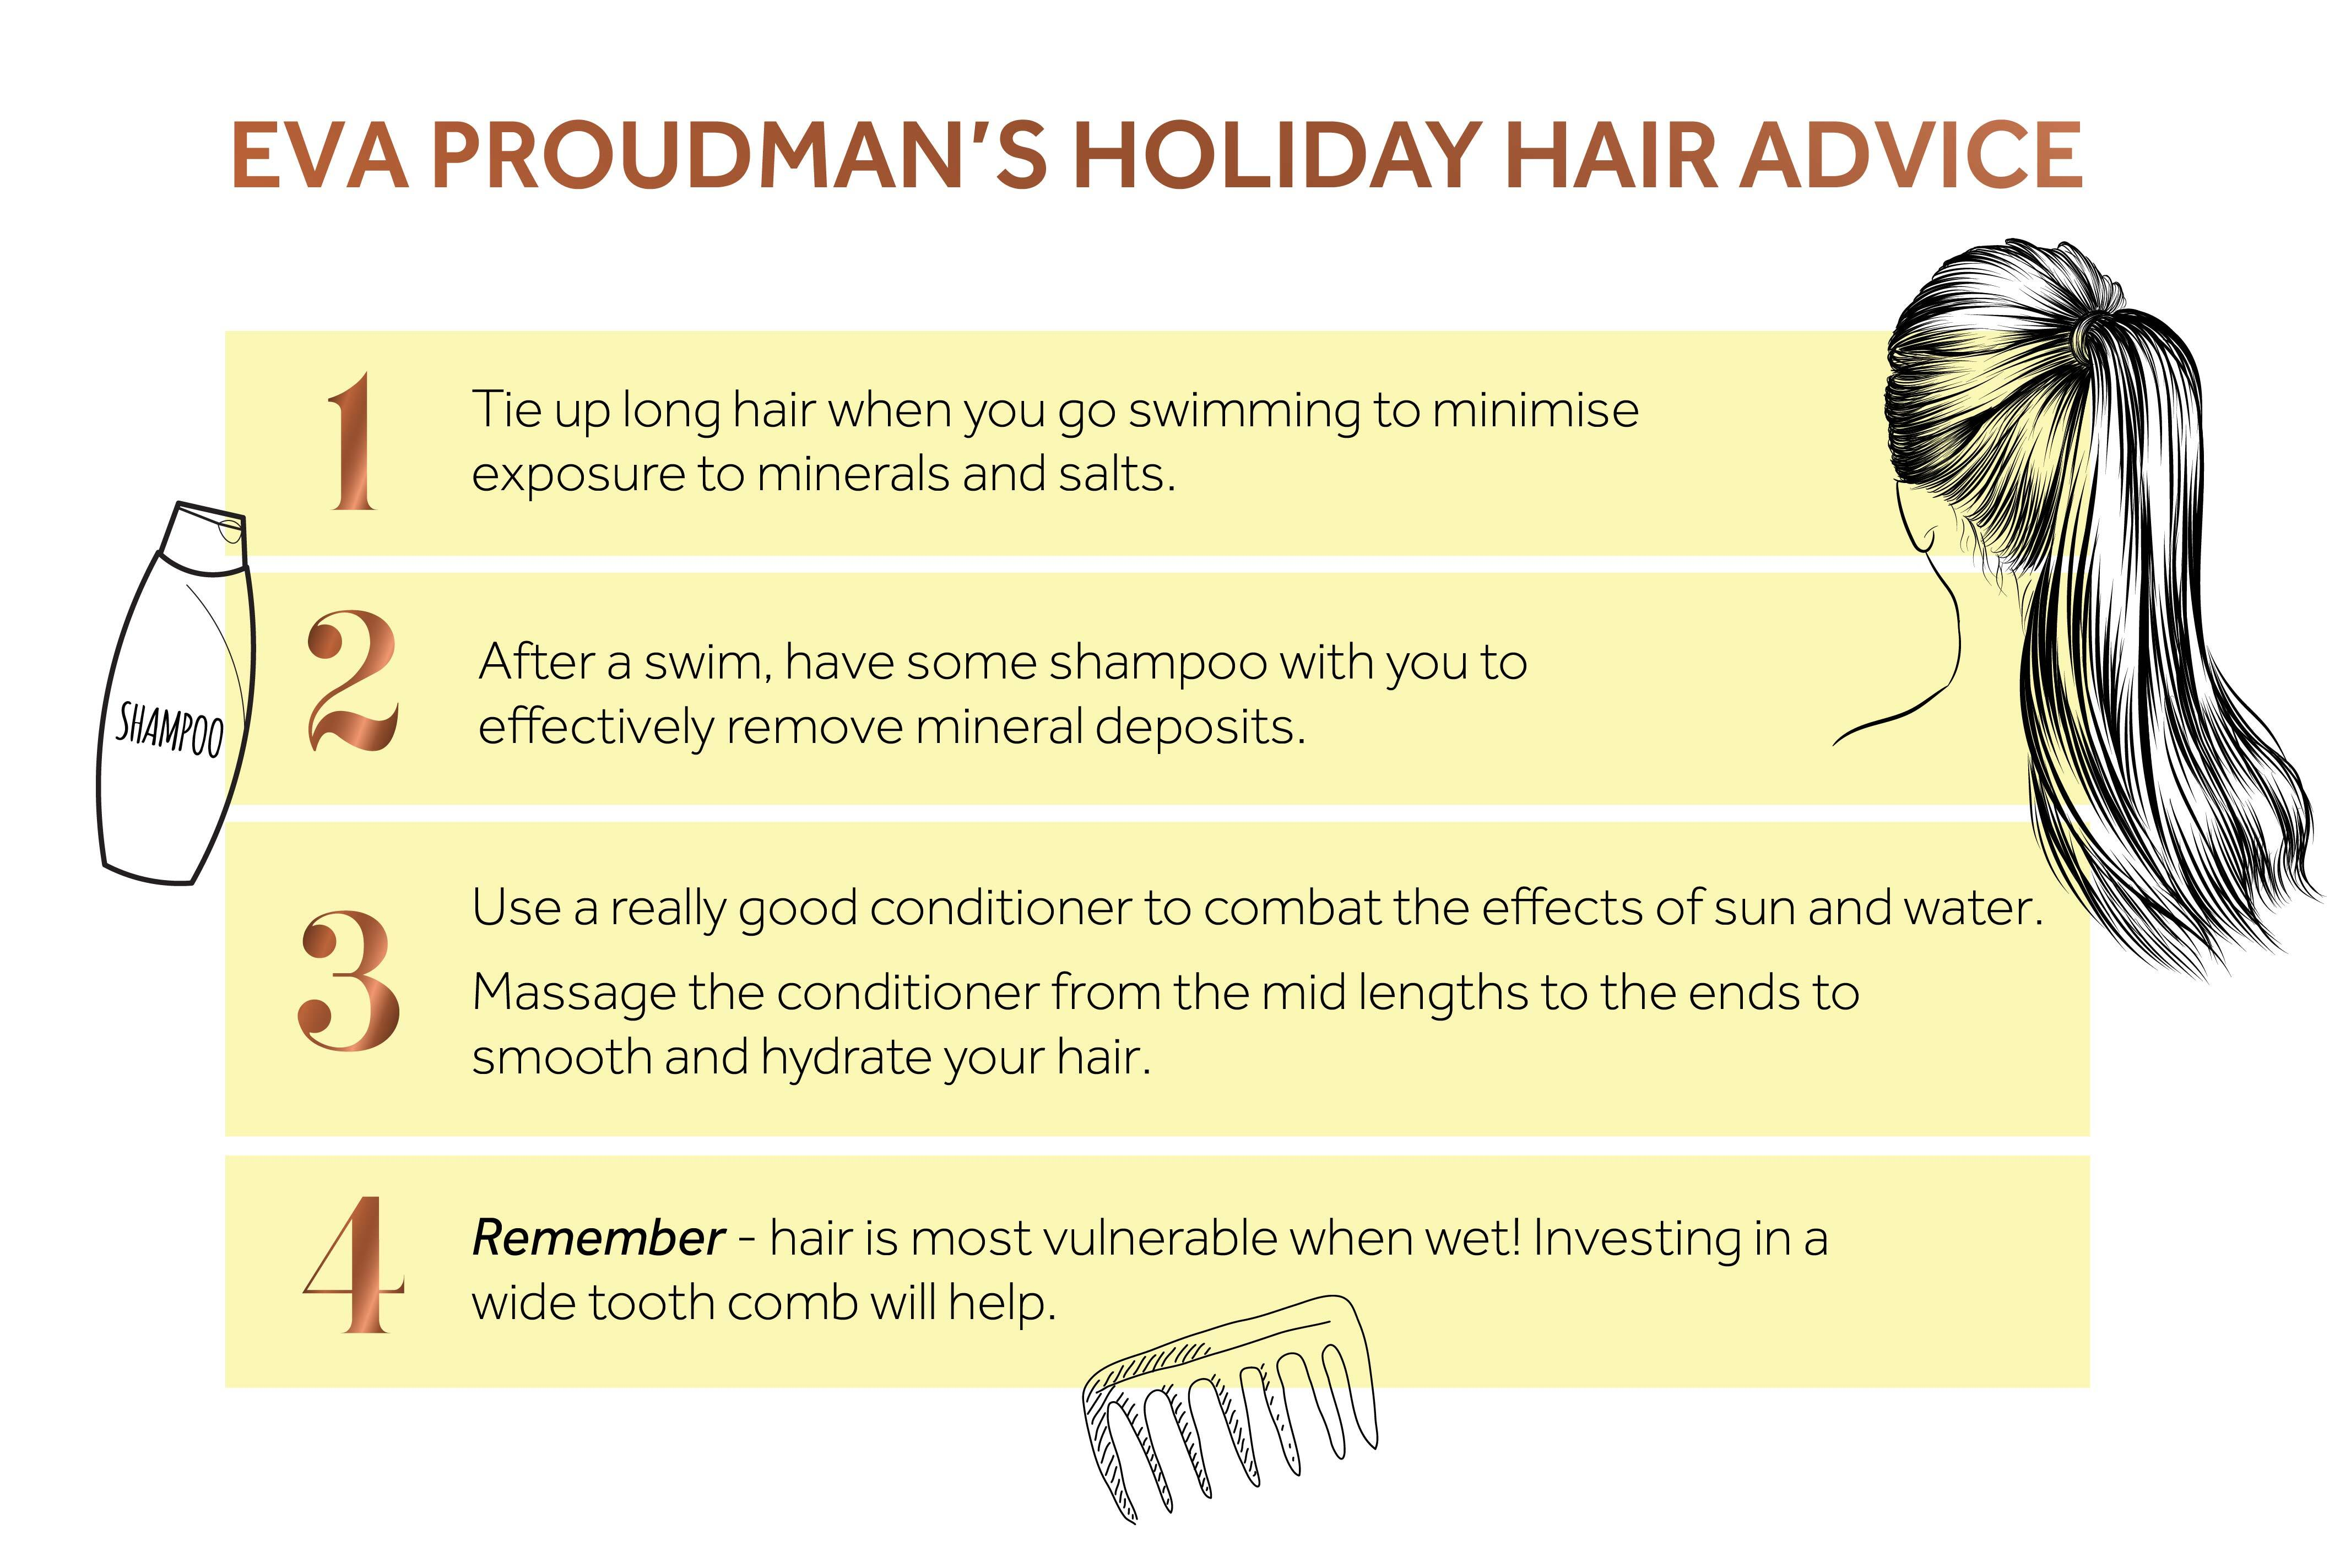 List showing four ways to protect hair while on holiday